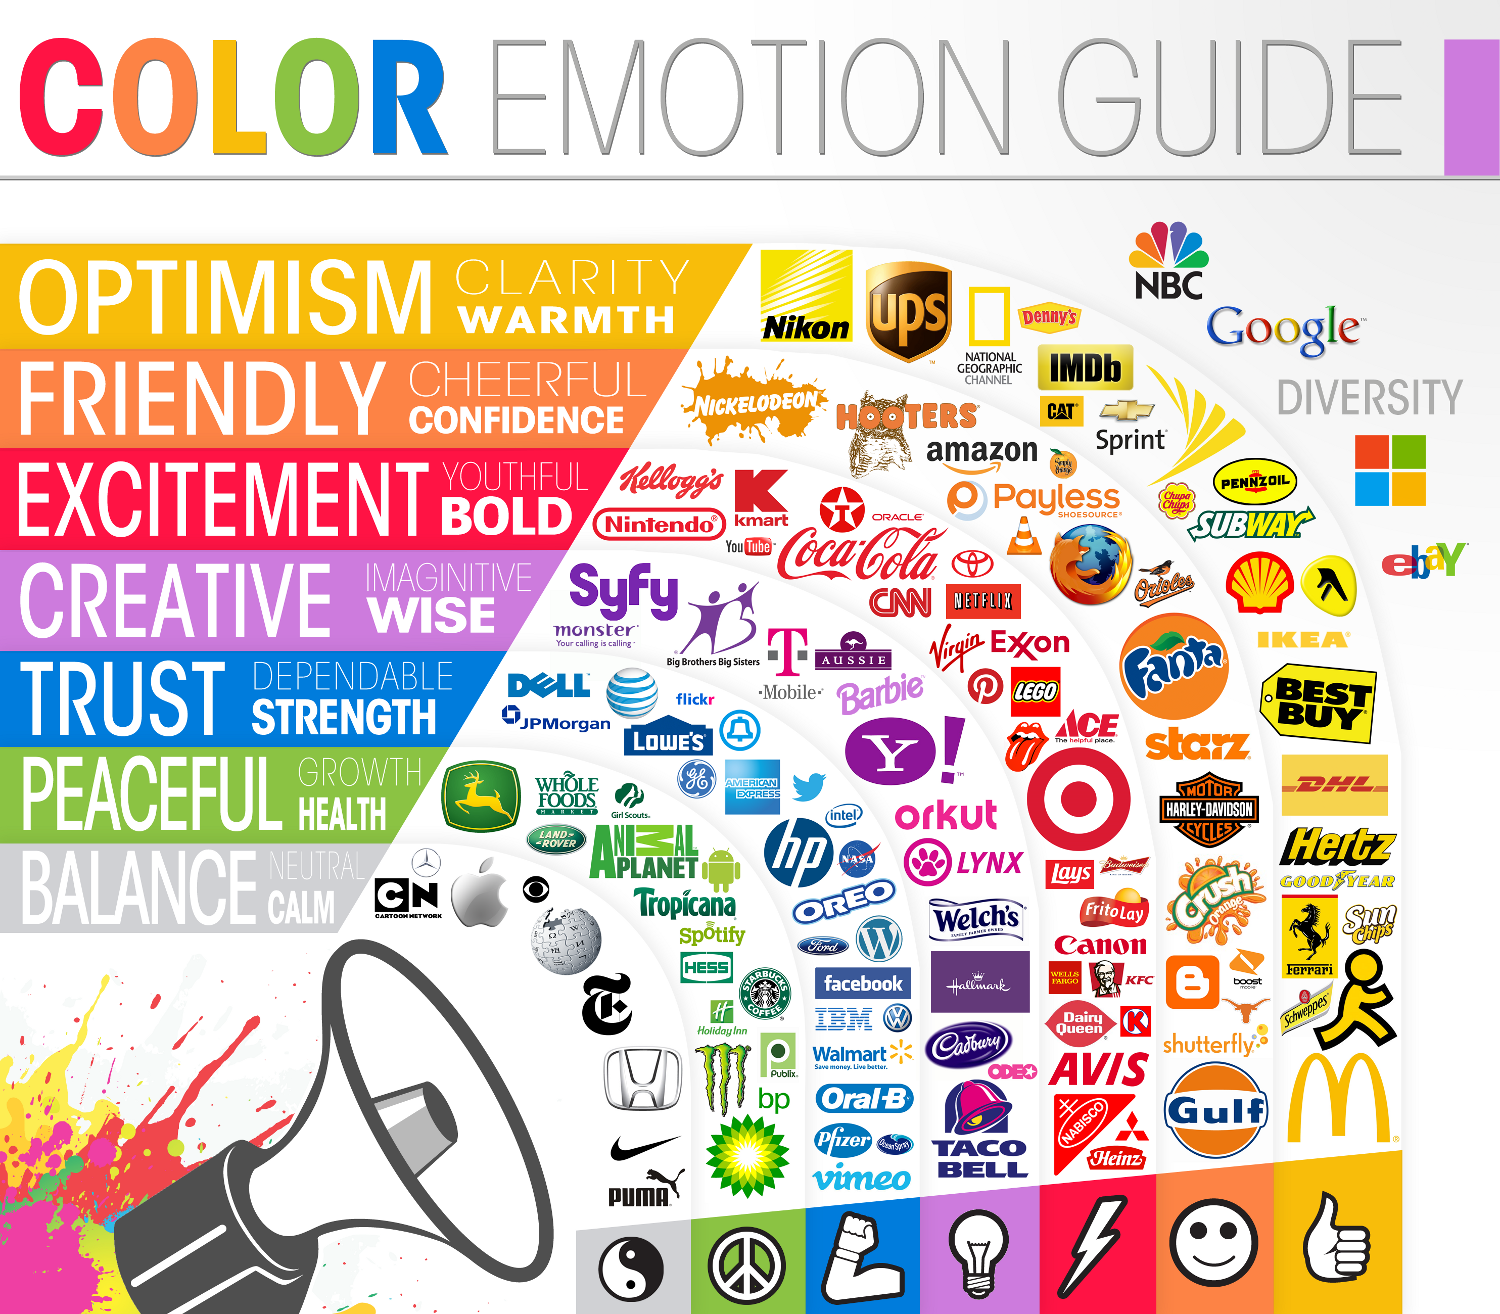 La importancia de los colores en Marketing